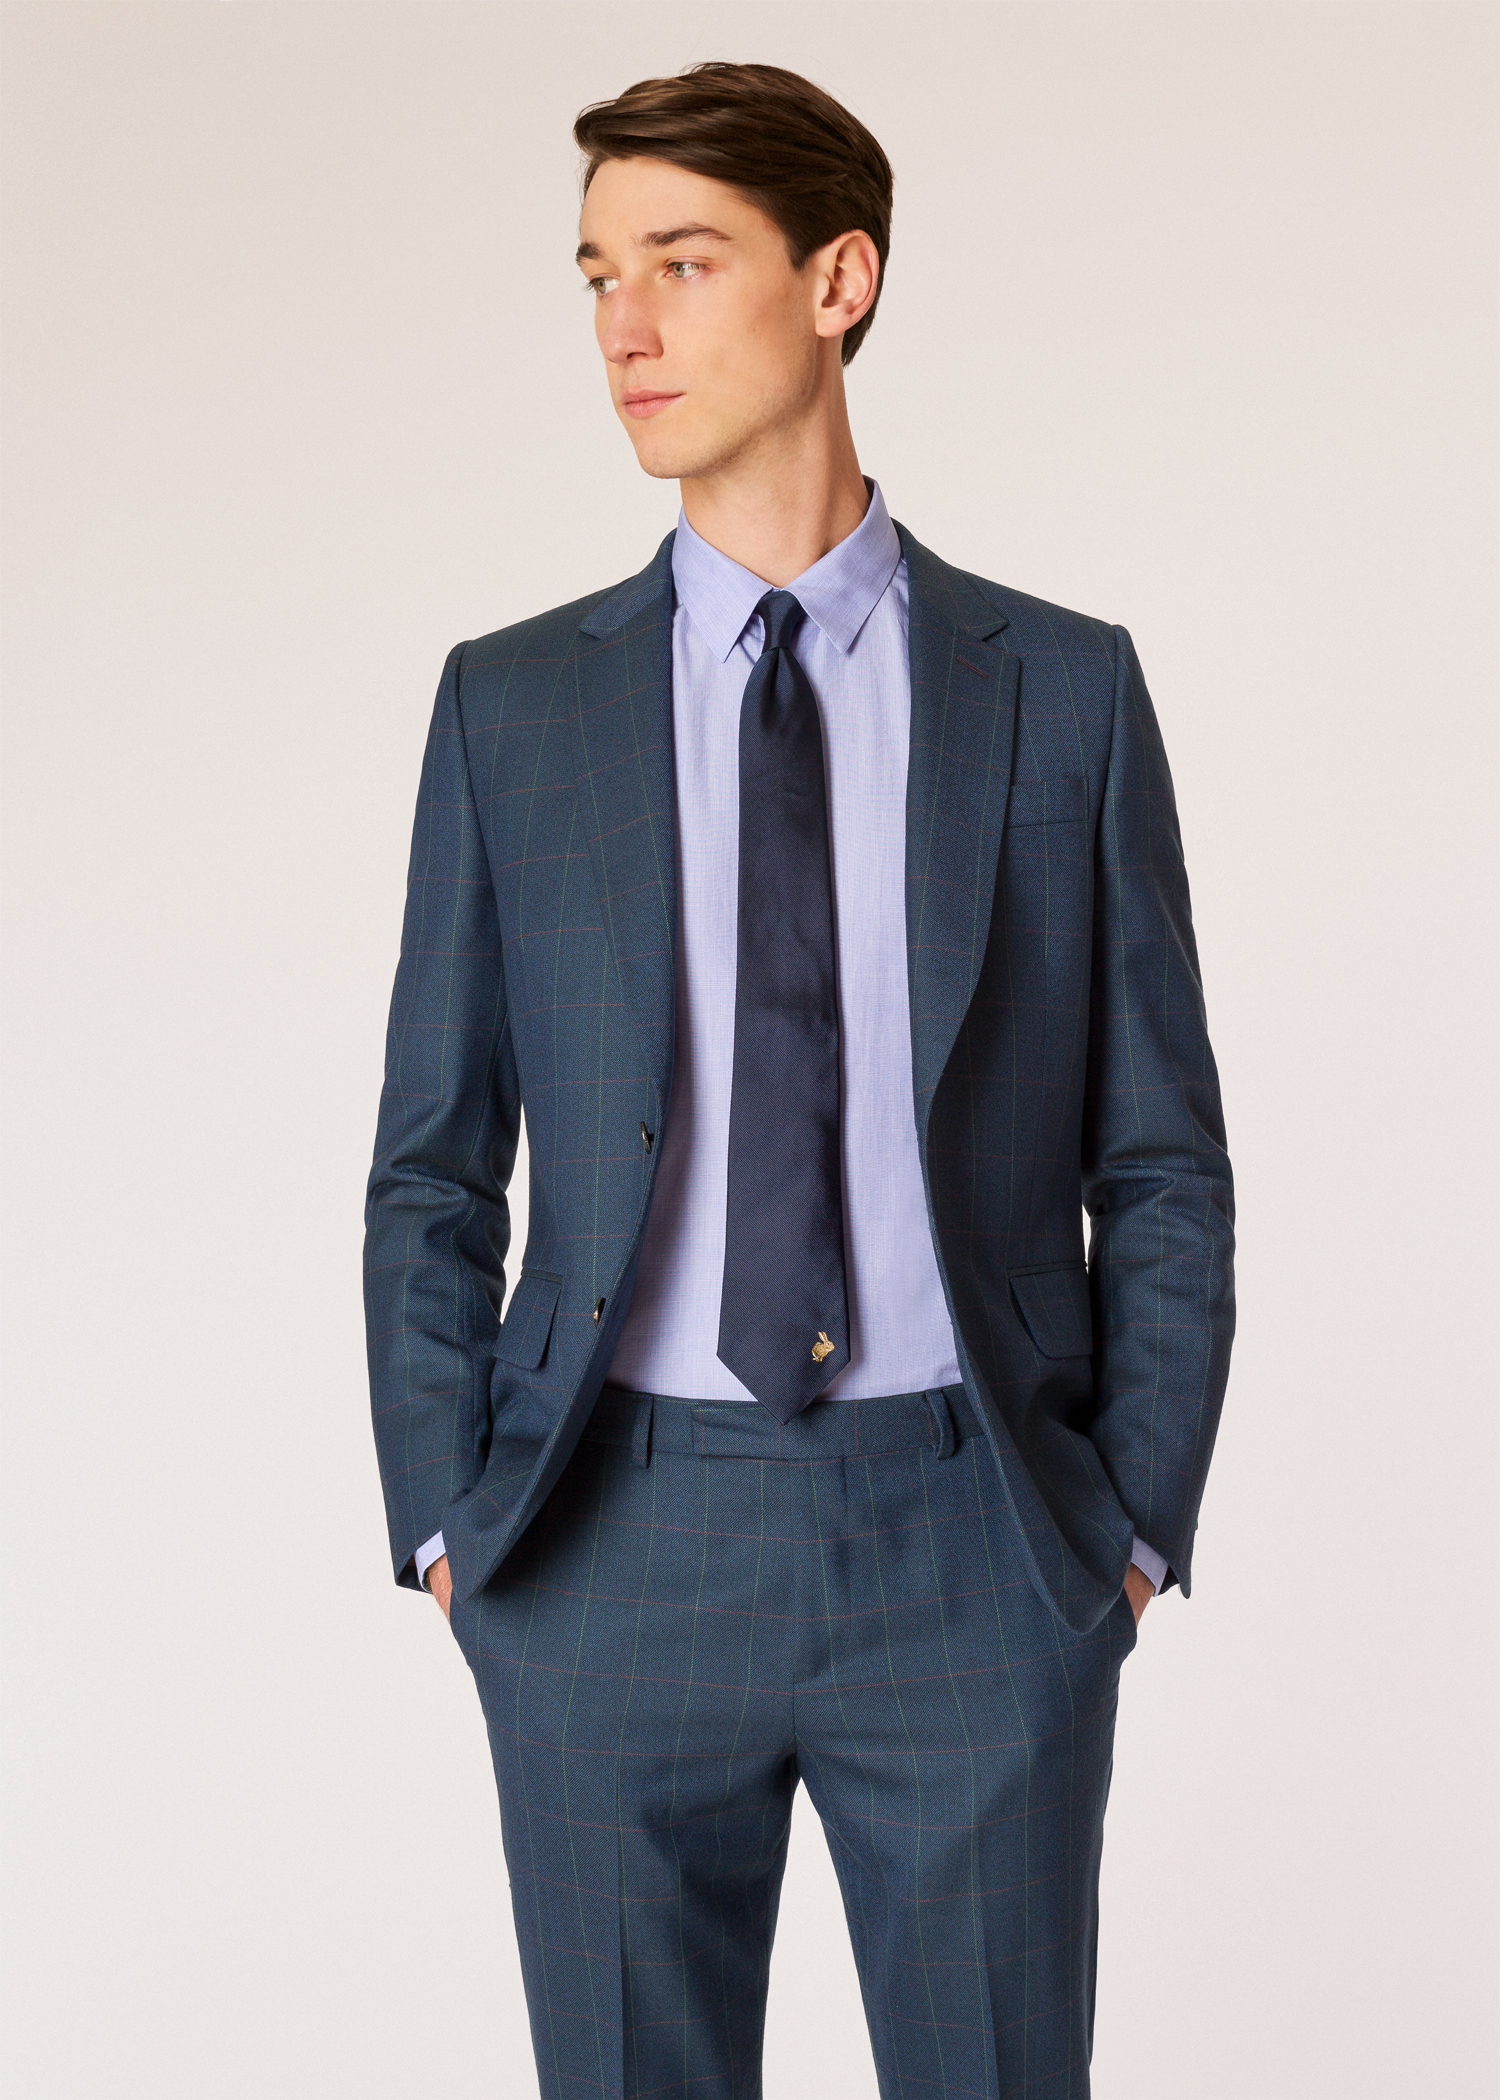 d2b699c897b8 Model blazer front view - The Soho - Men's Tailored-Fit Dark Teal Windowpane  Check